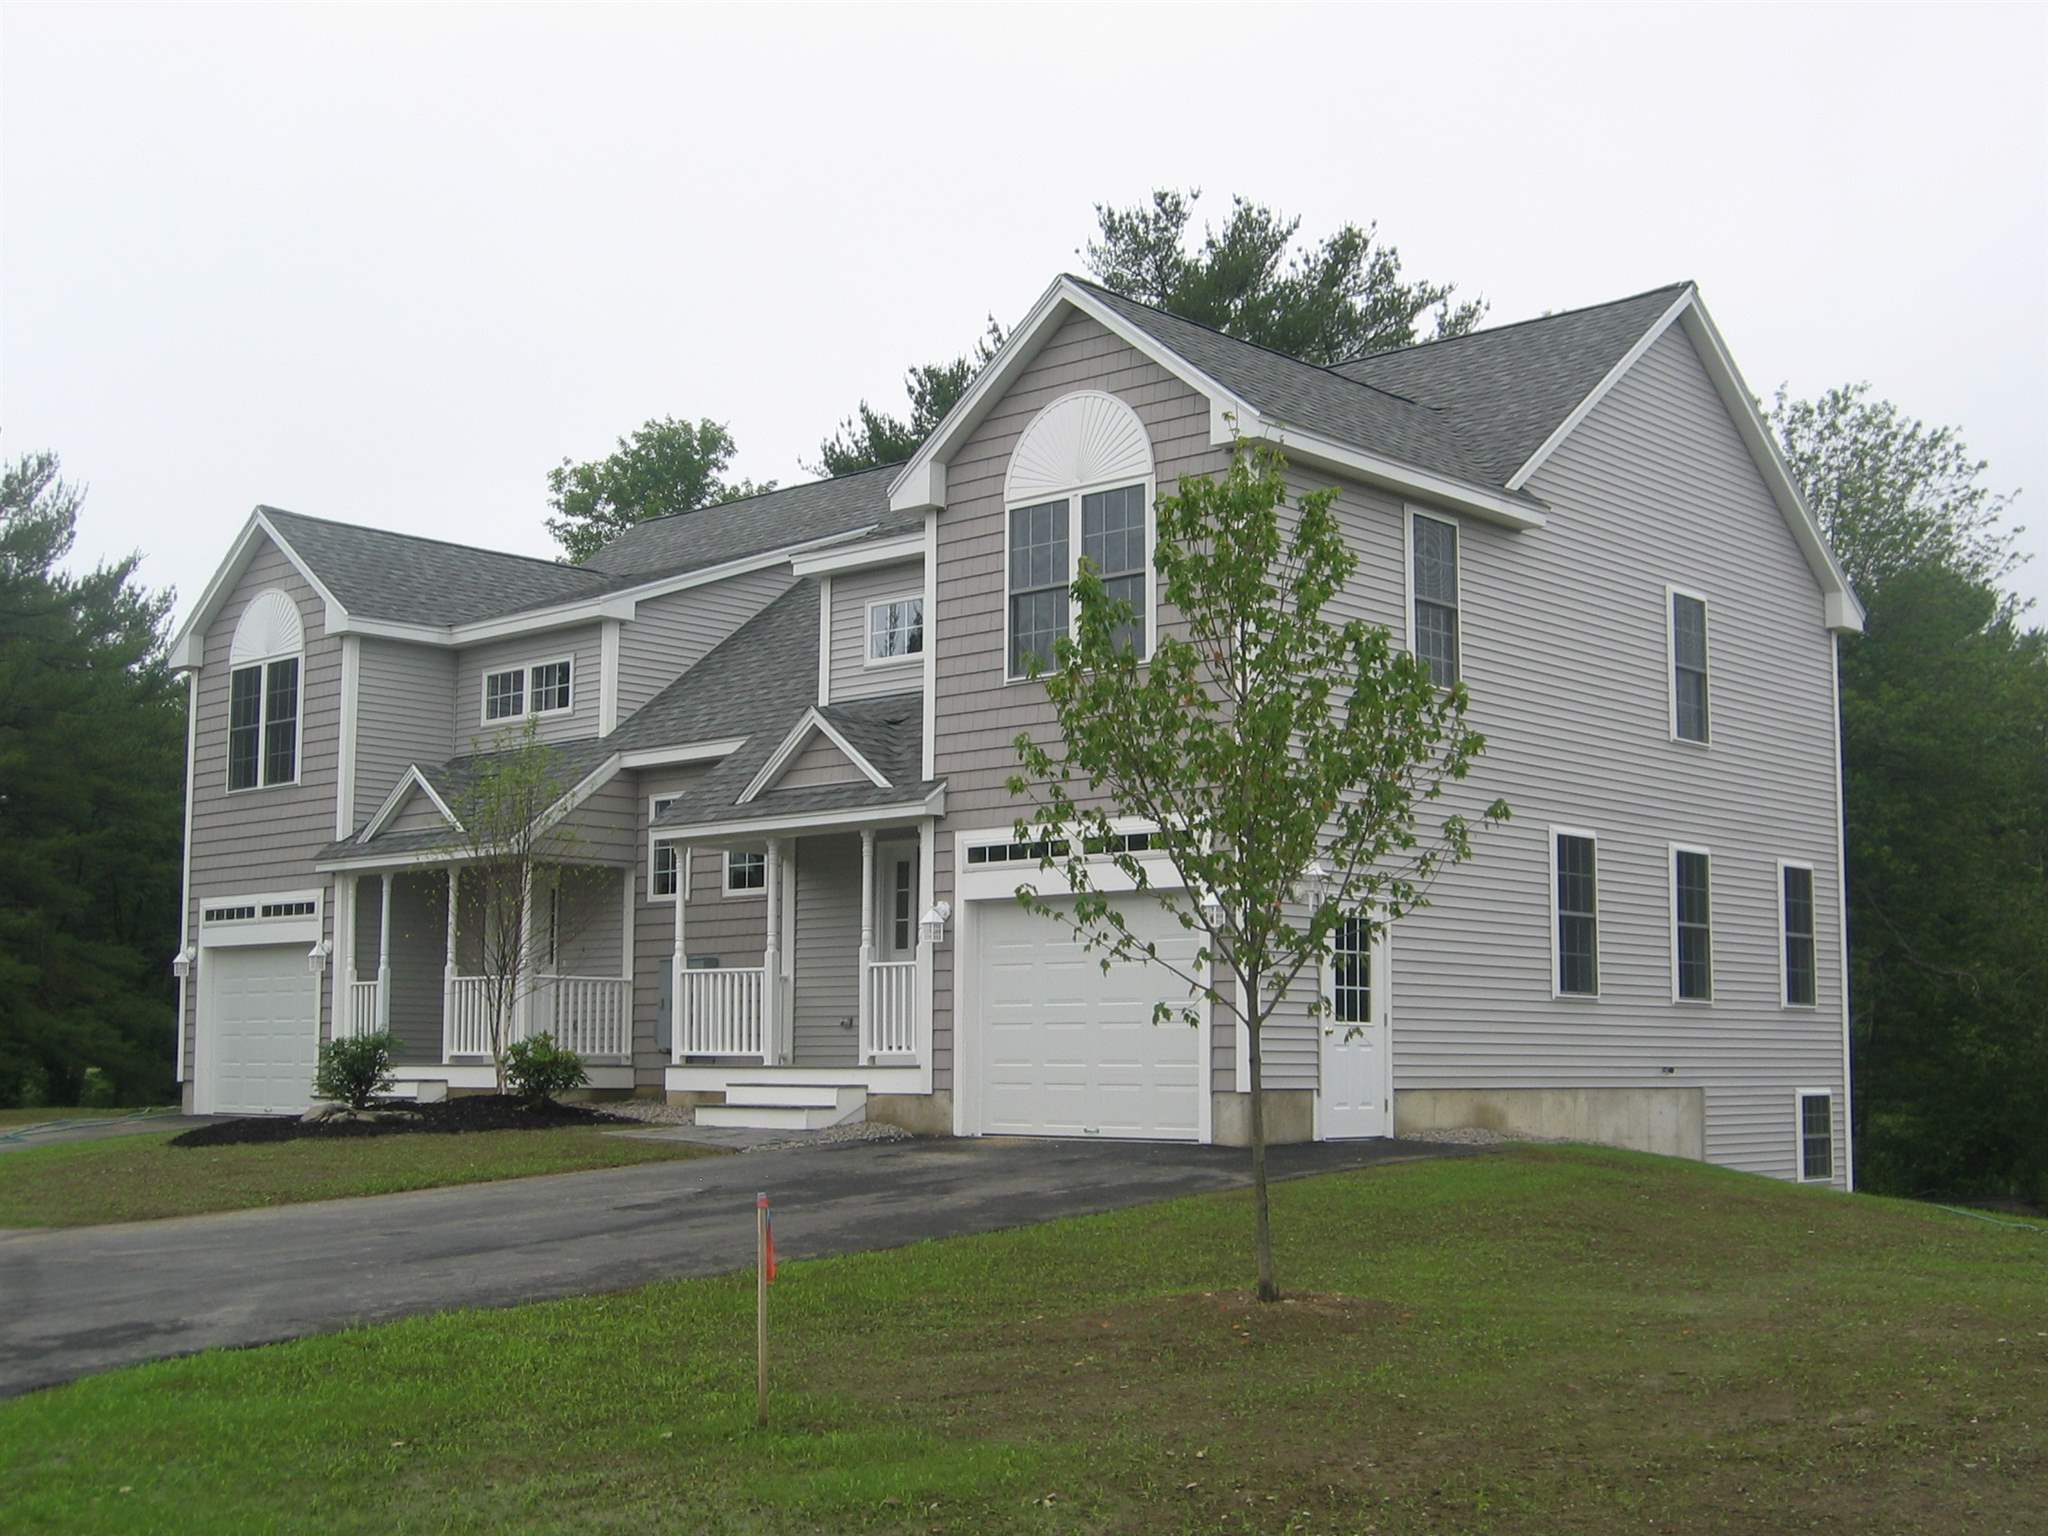 Photo of 3 Taylor Court Stratham NH 03885